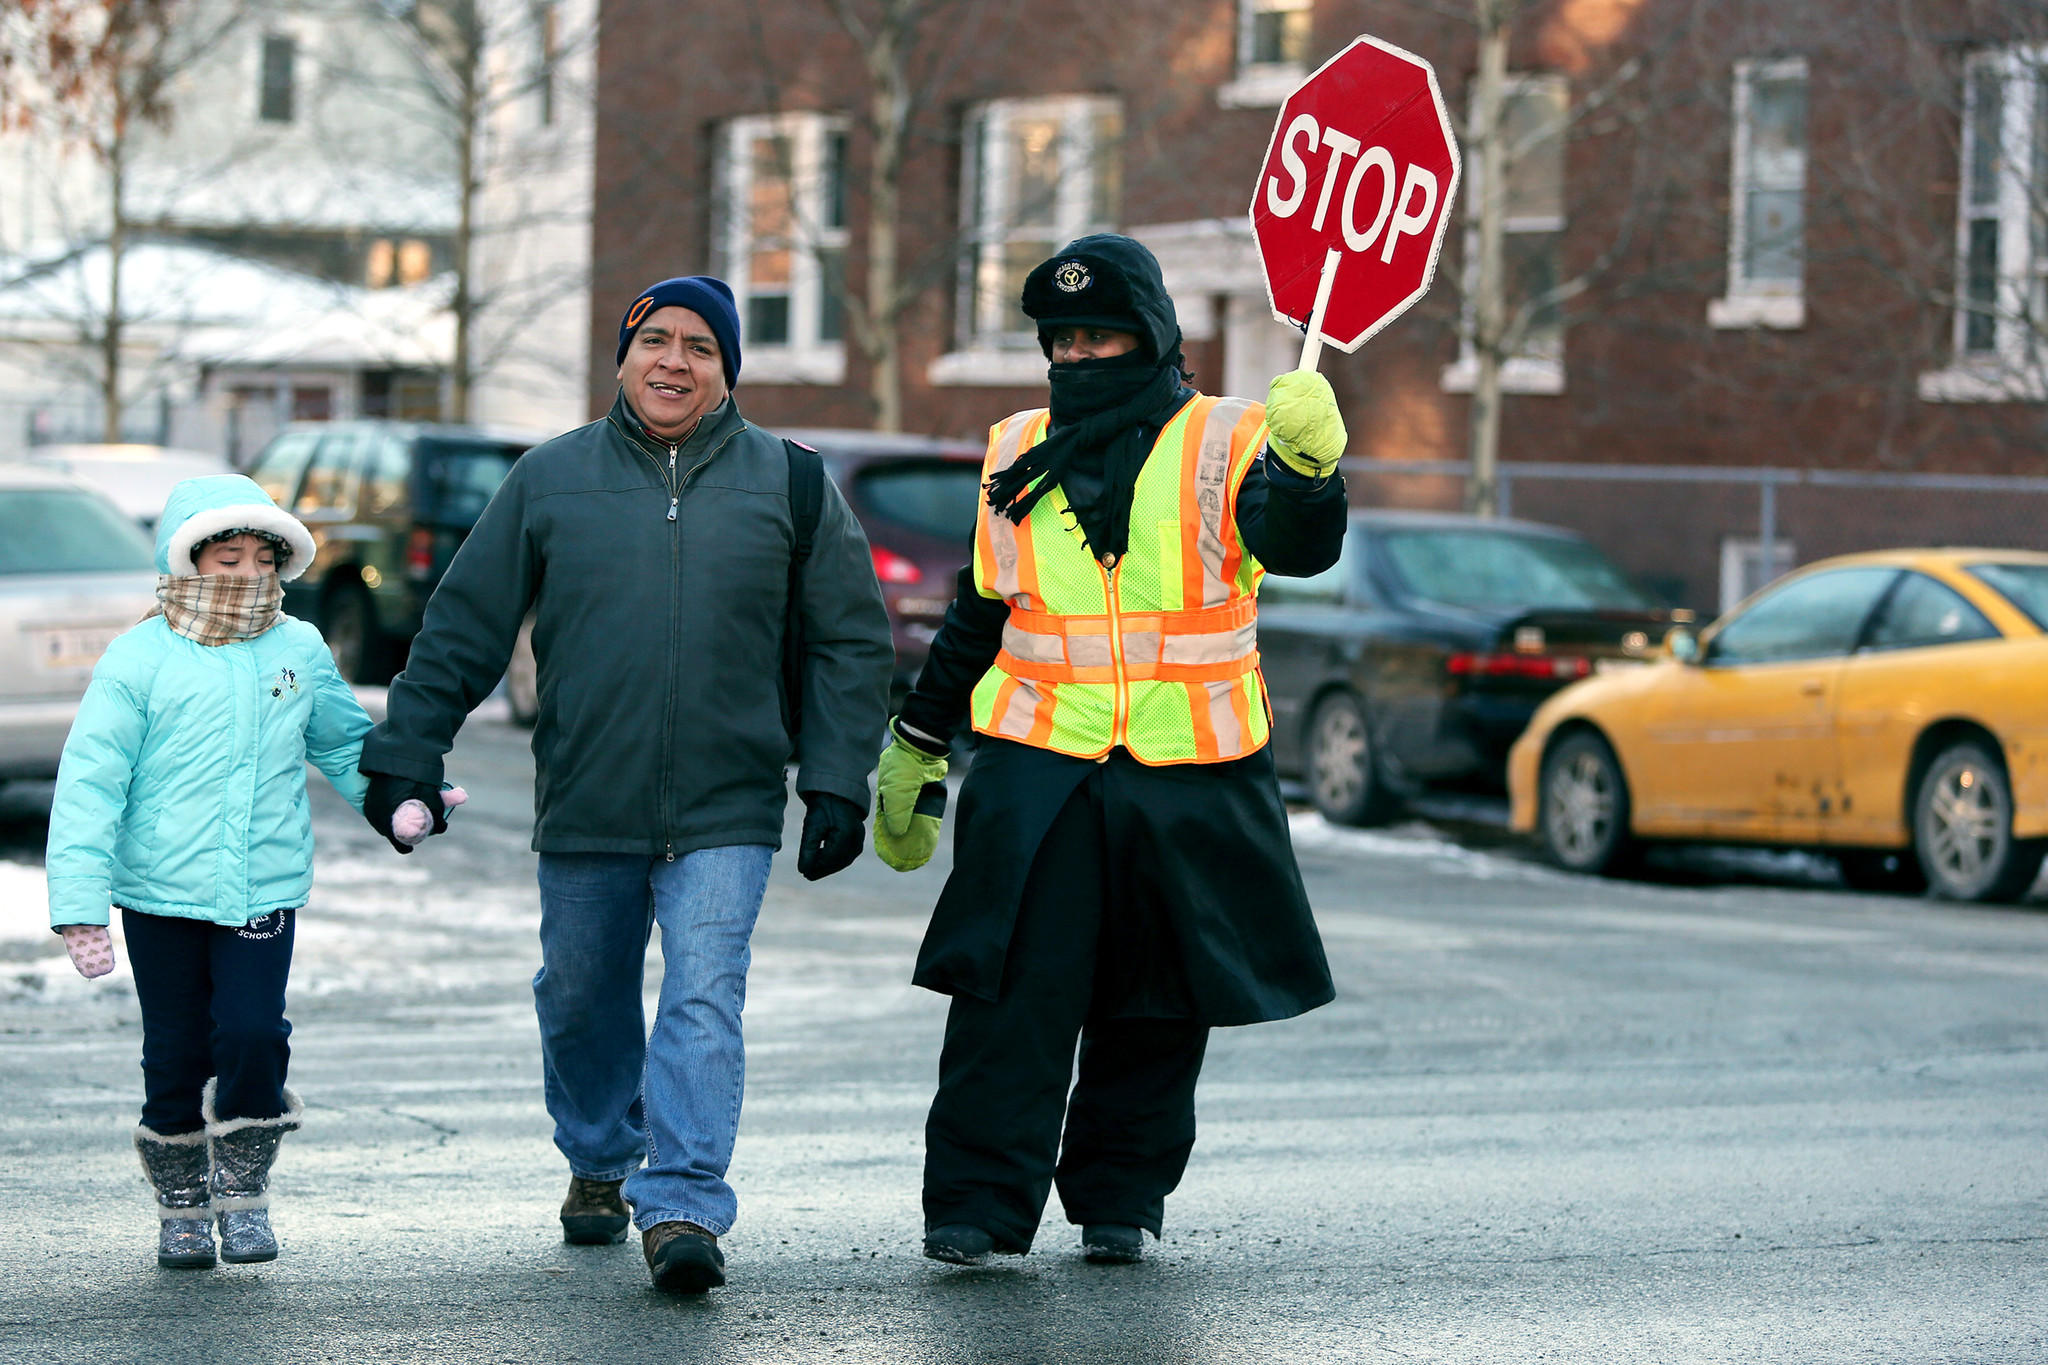 Crossing guard Tina Dockery helps a man and young girl cross the street on their way to school.